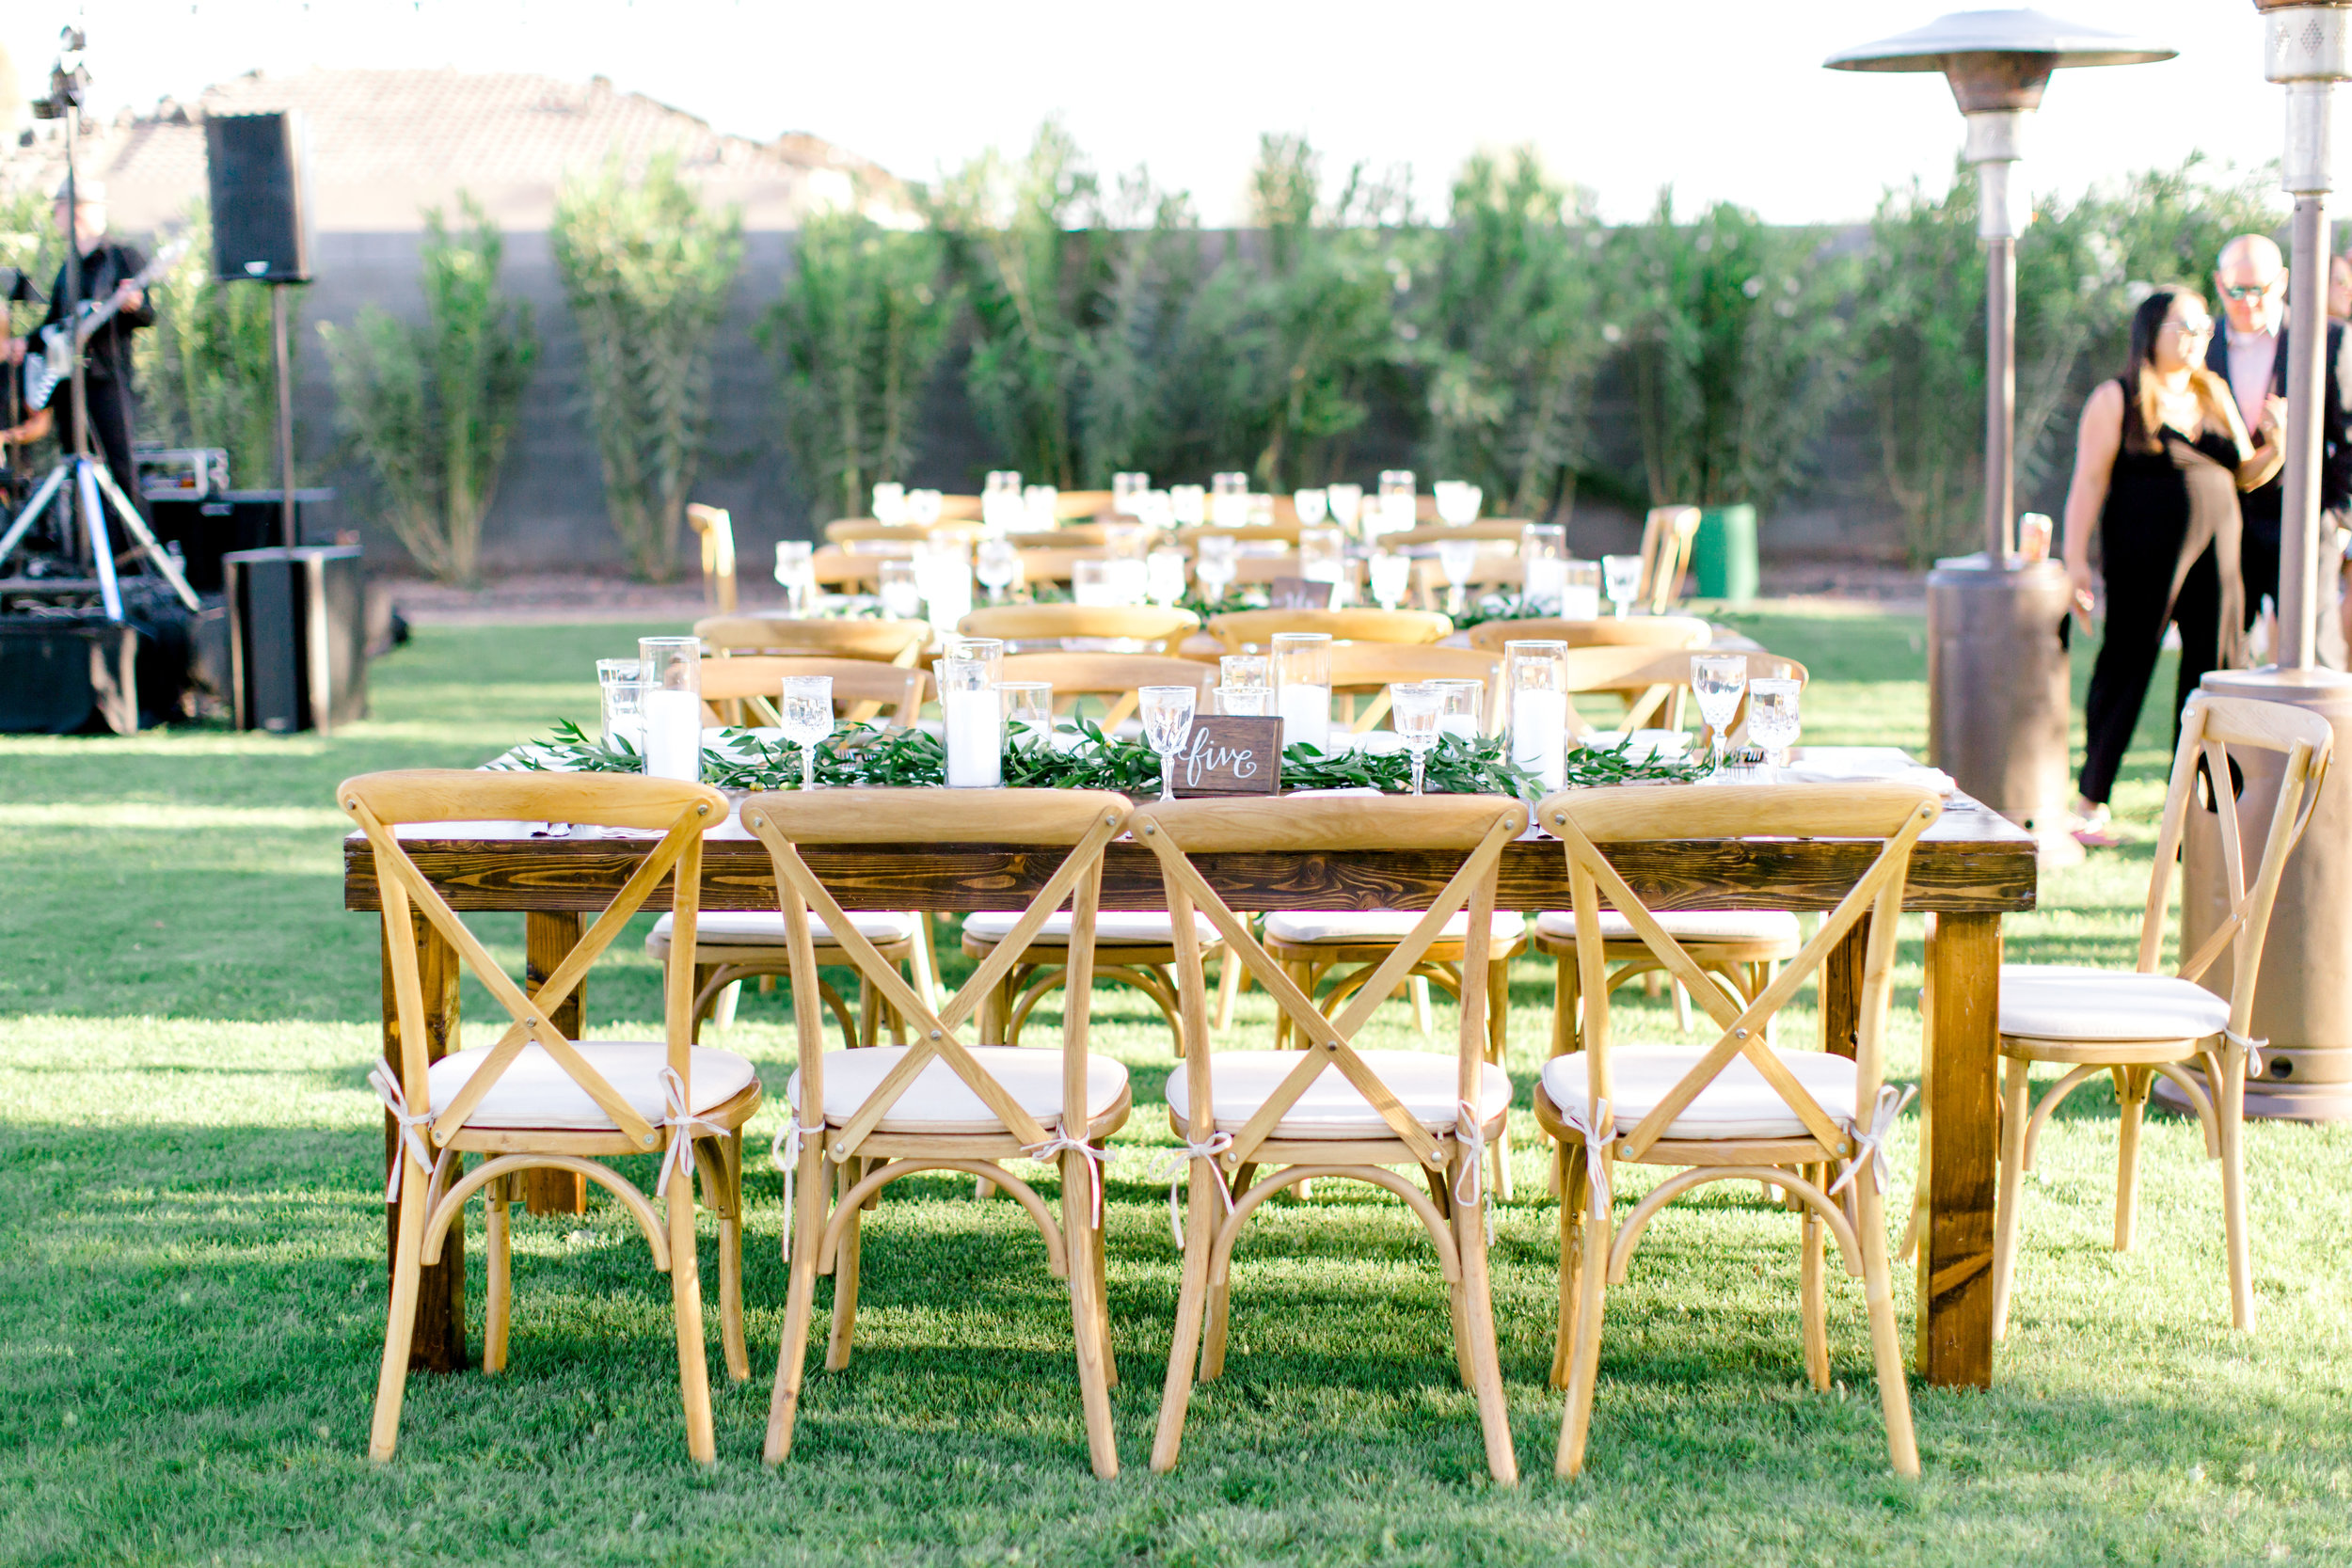 Blush and white backyard wedding - Farm Tables with Loose Greenery